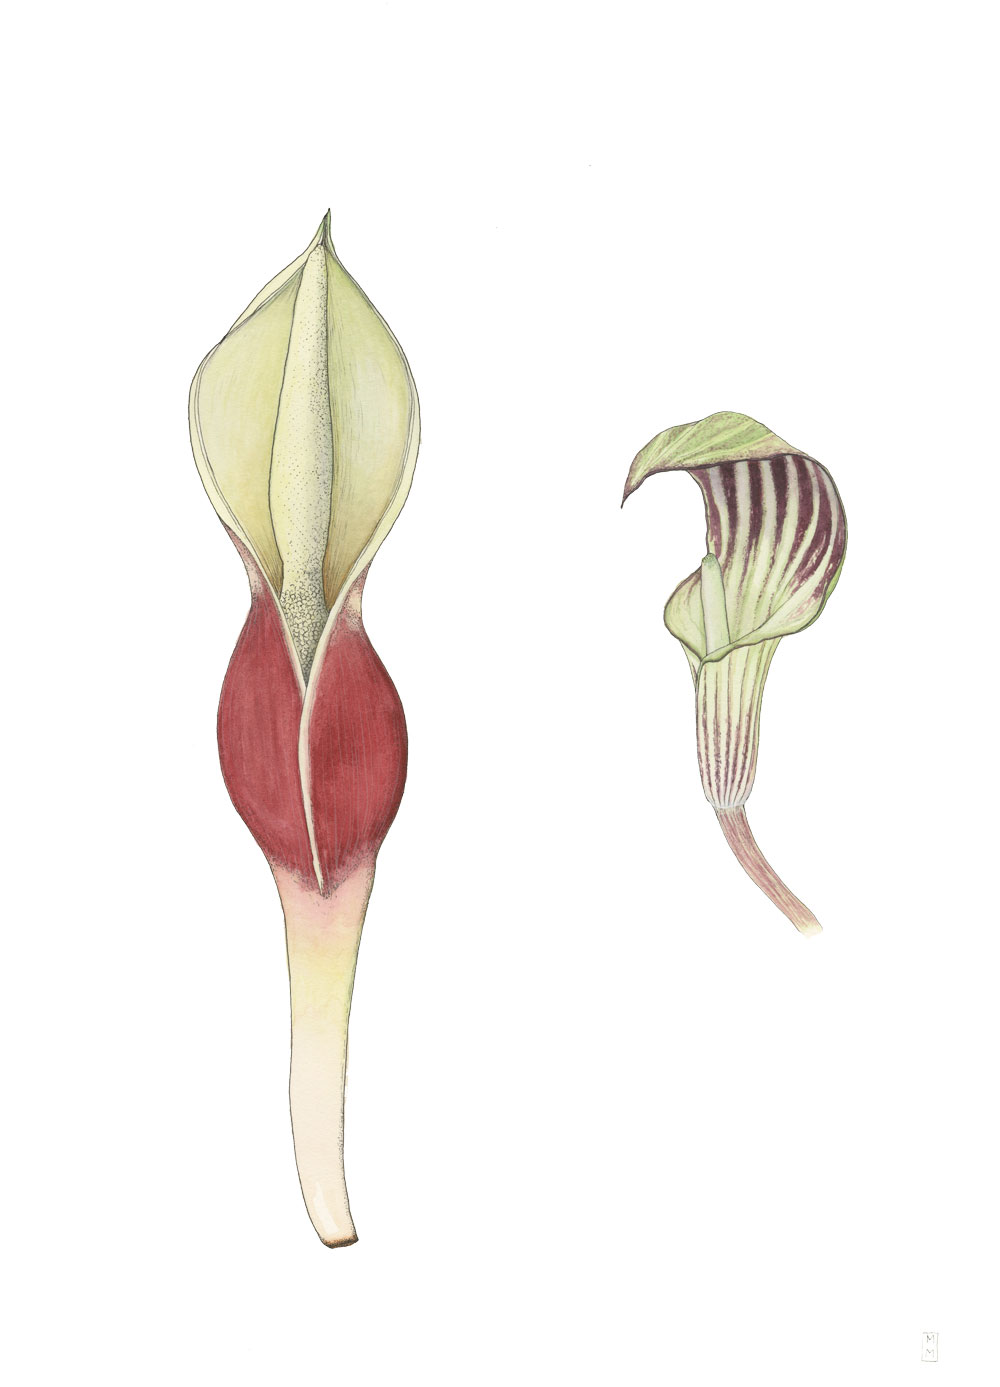 philodendron-sp-and-jack-in-the-pulpit_mara-menahan.jpg